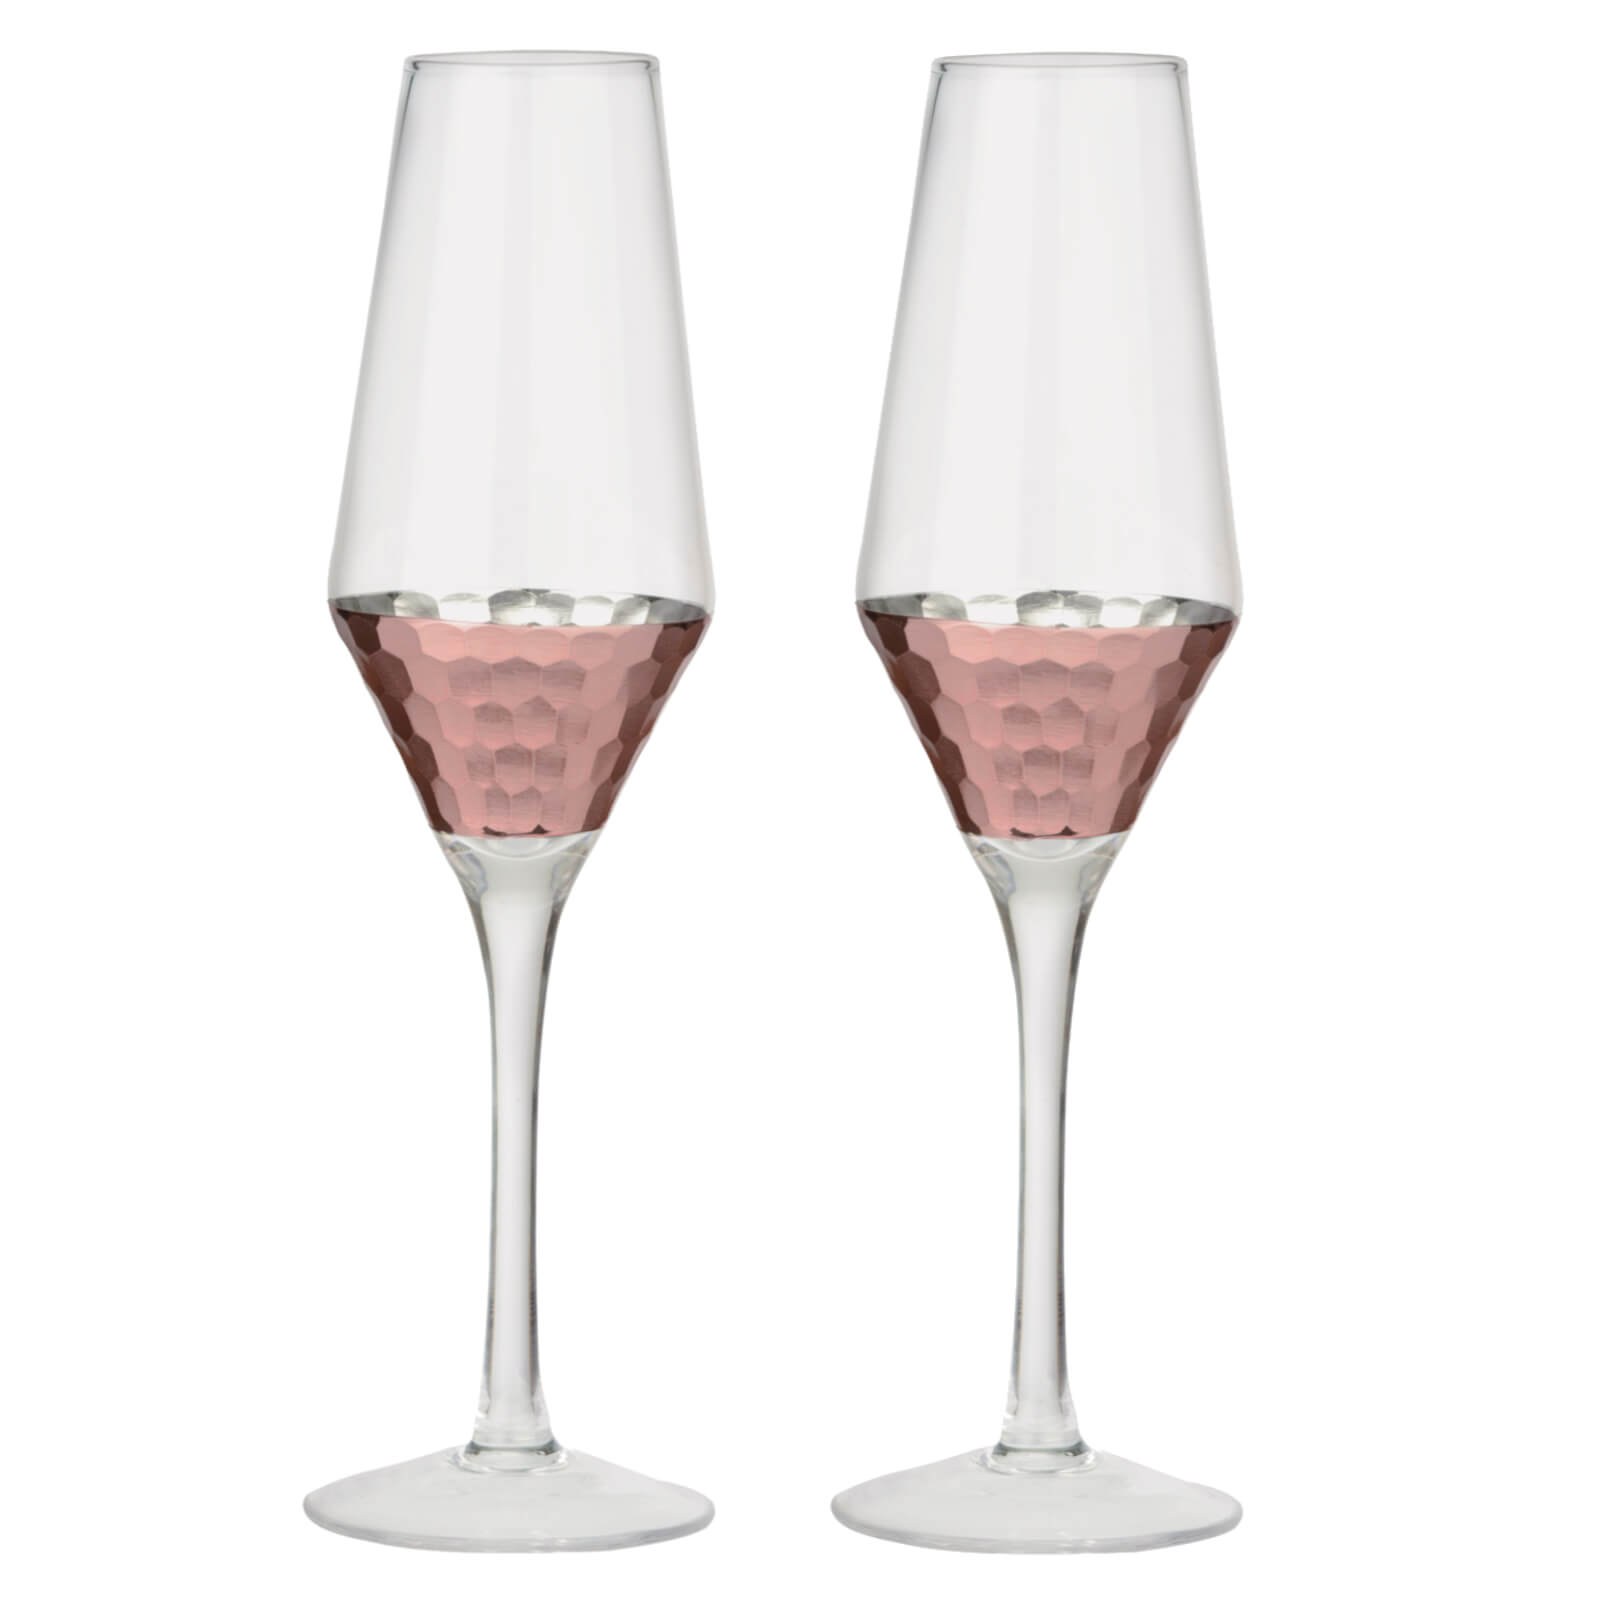 Artland Coppertino Flute Glasses (Box of 2)